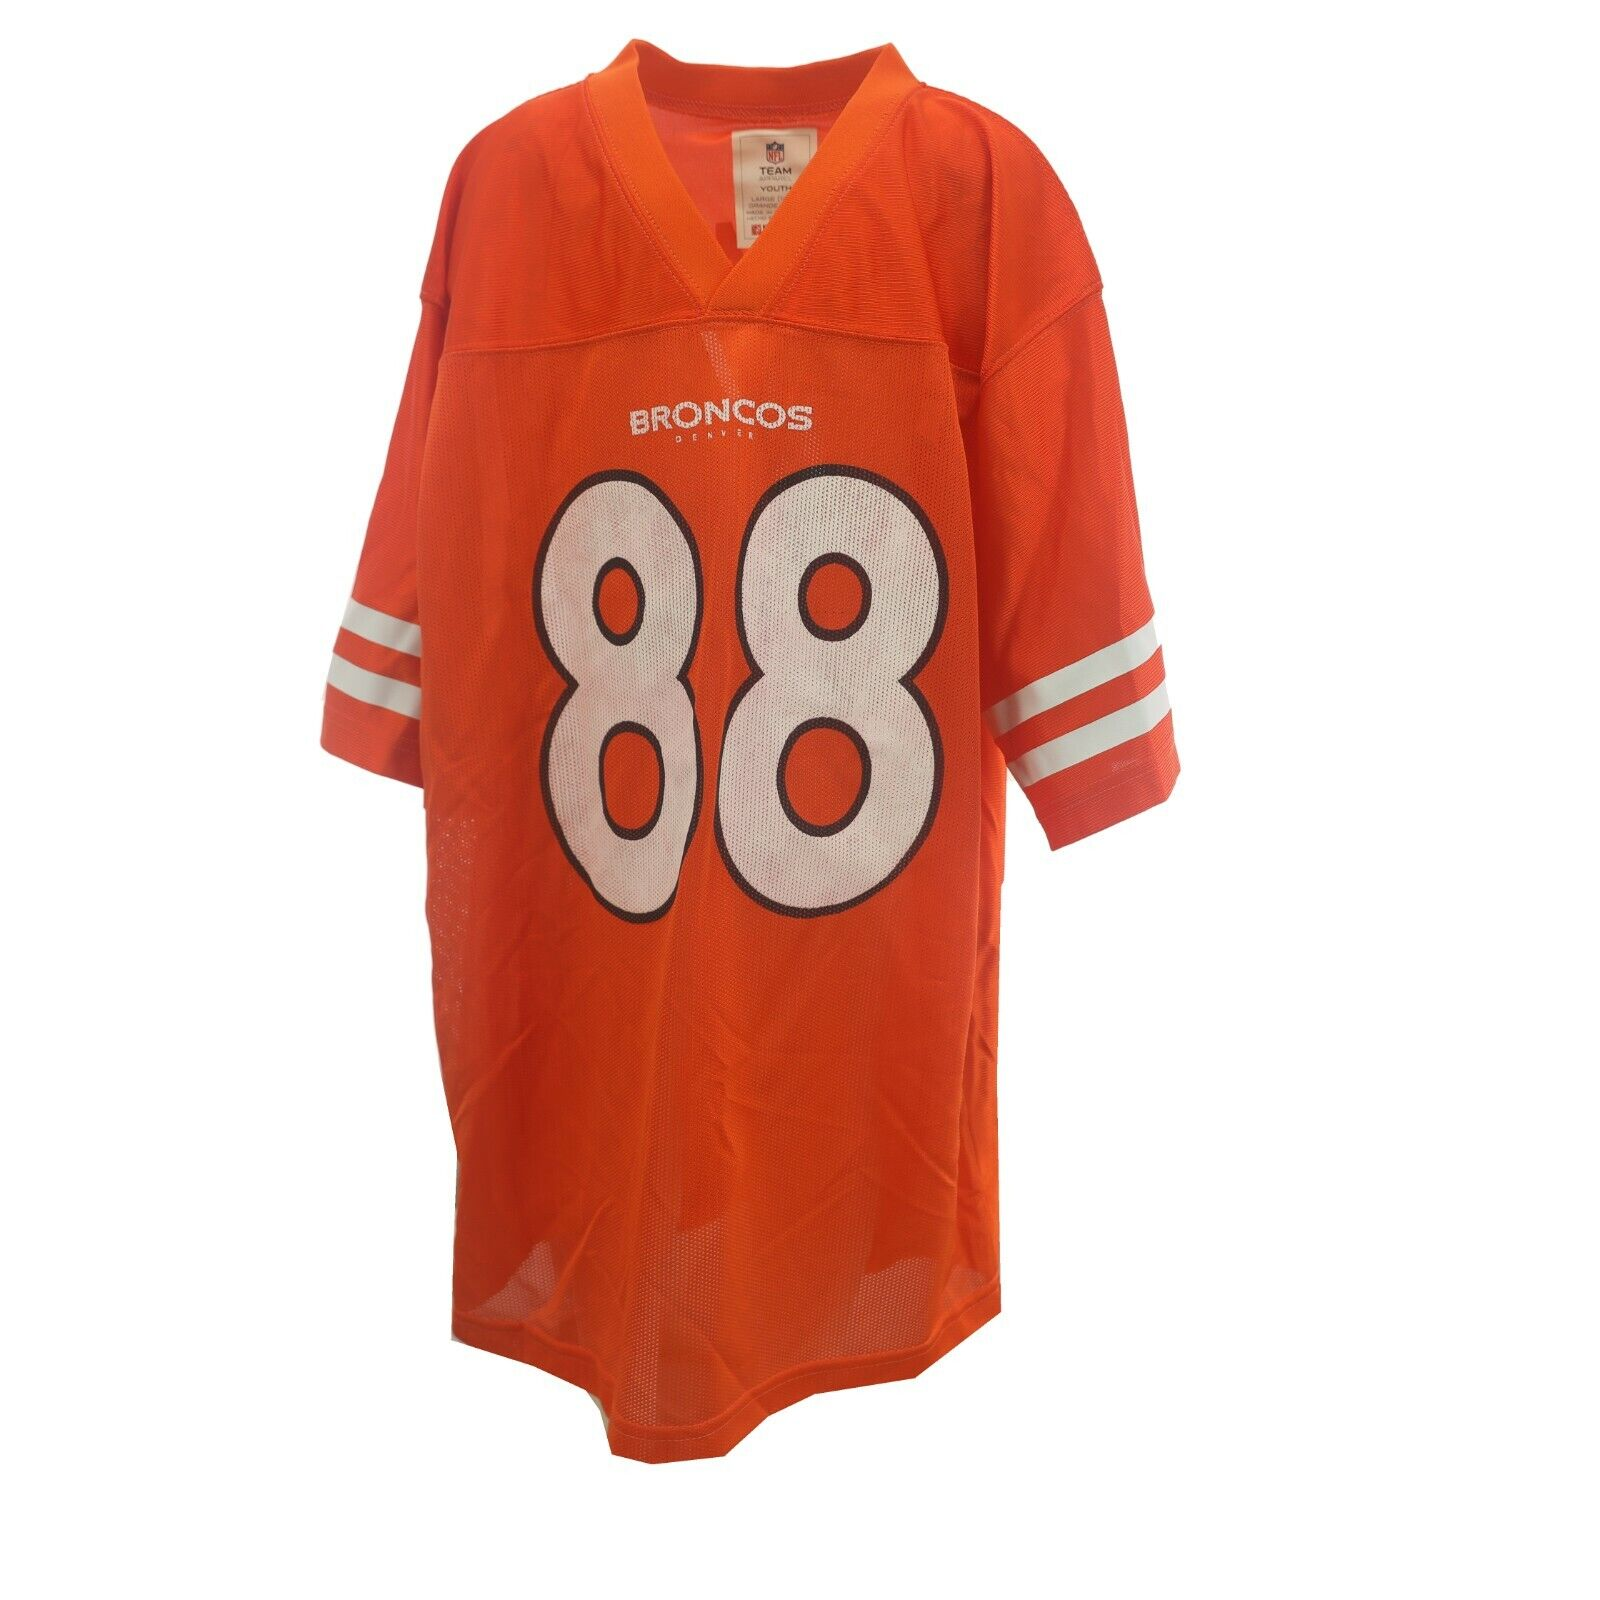 Details about Defect Discount Denver Broncos Thomas Official NFL Kids Youth Size Jersey New